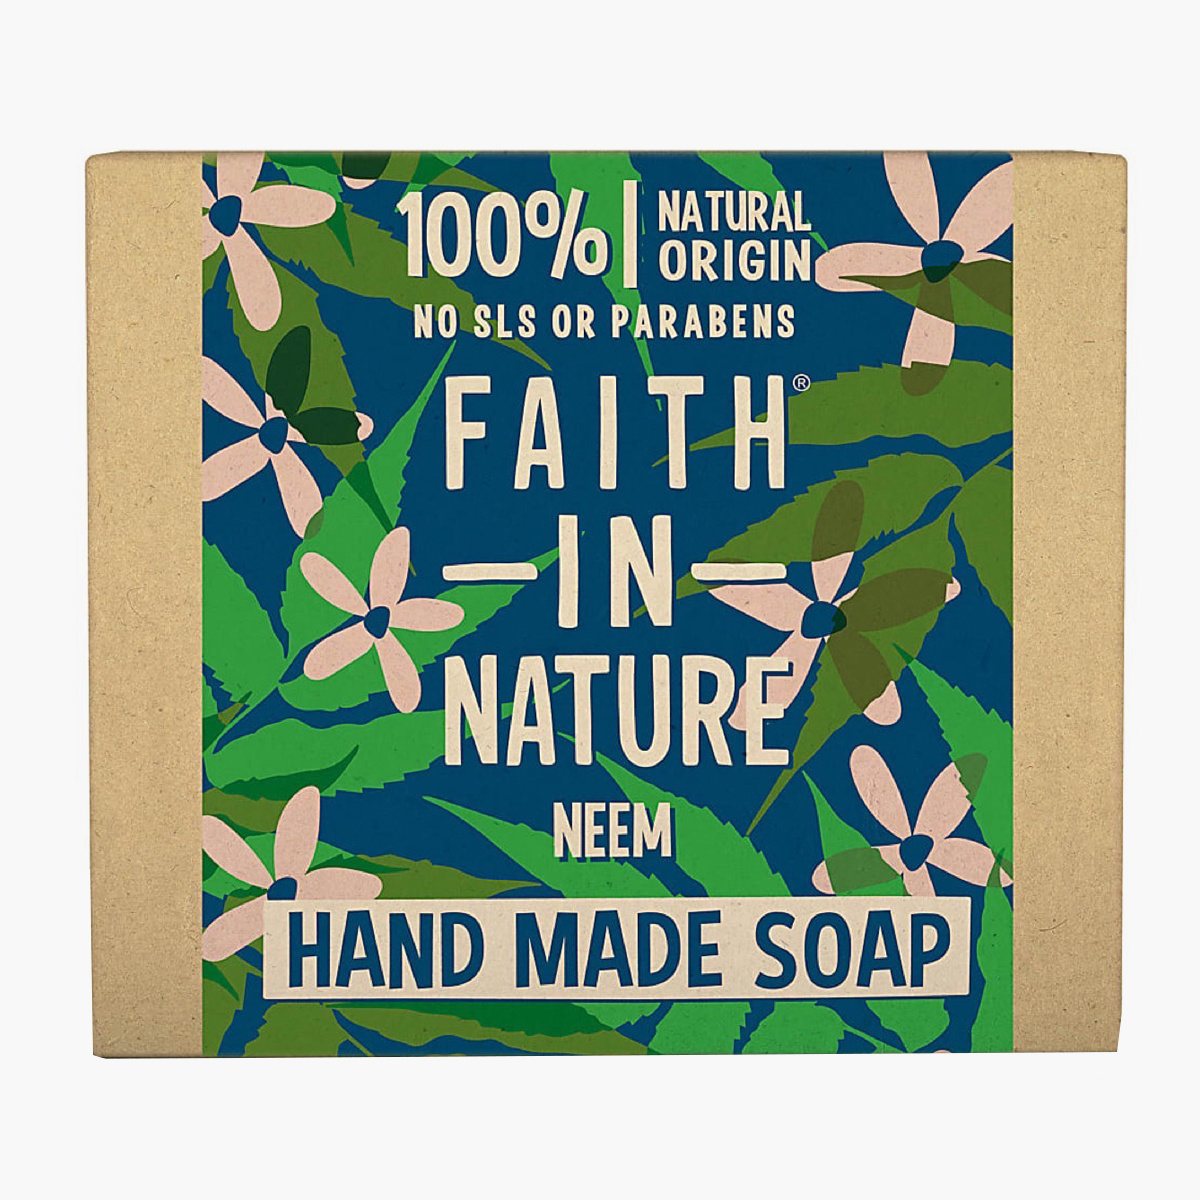 Faith in Nature Neem Soap - 100 gms